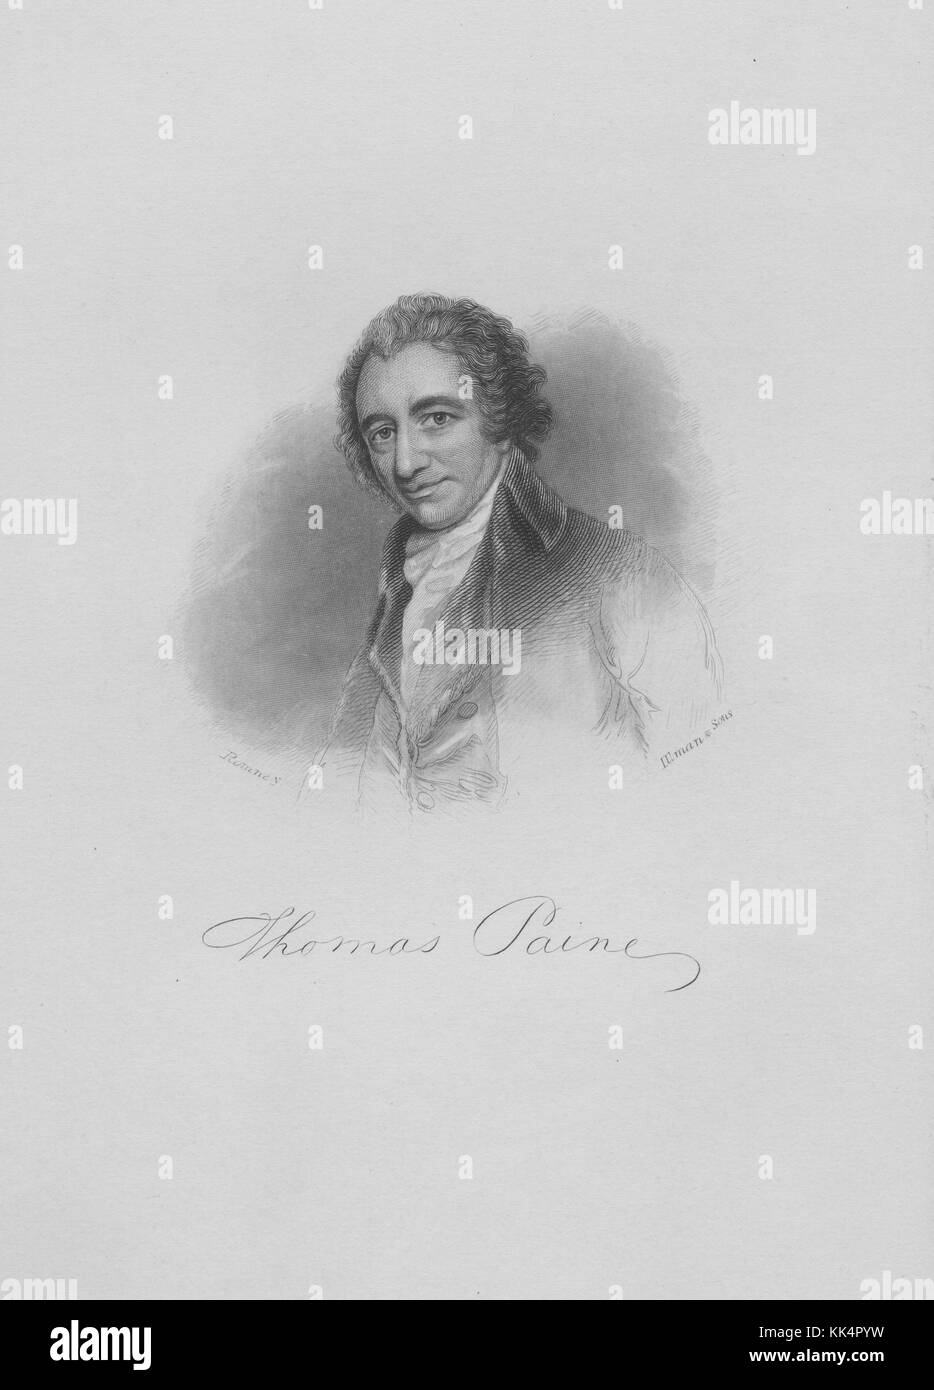 Engraved portrait of Thomas Paine, one of the Founding Fathers of the United States, an English-American political - Stock Image